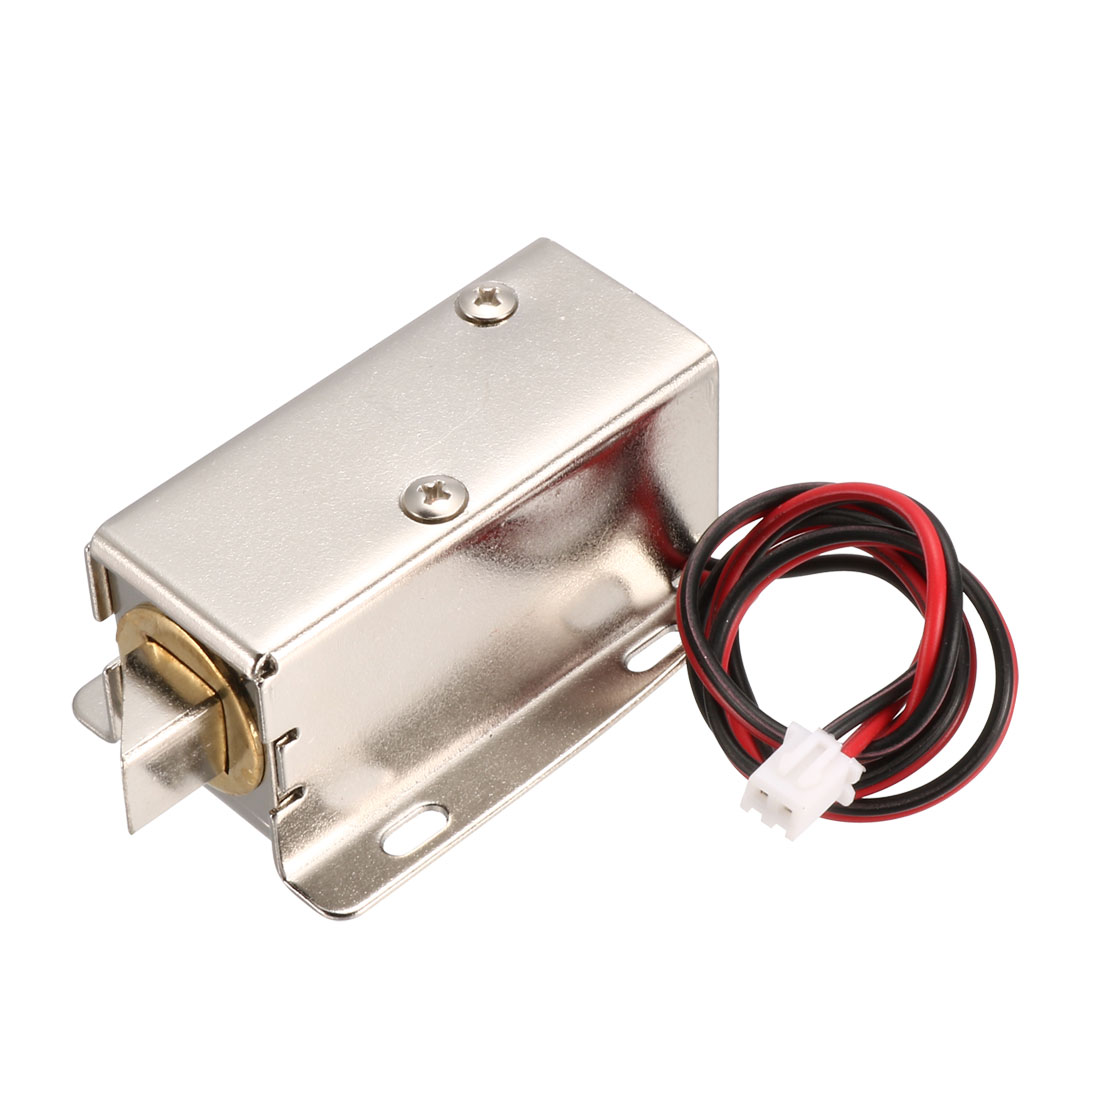 0837L DC 12V 8W Open Frame Type Solenoid for Electric Door Lock